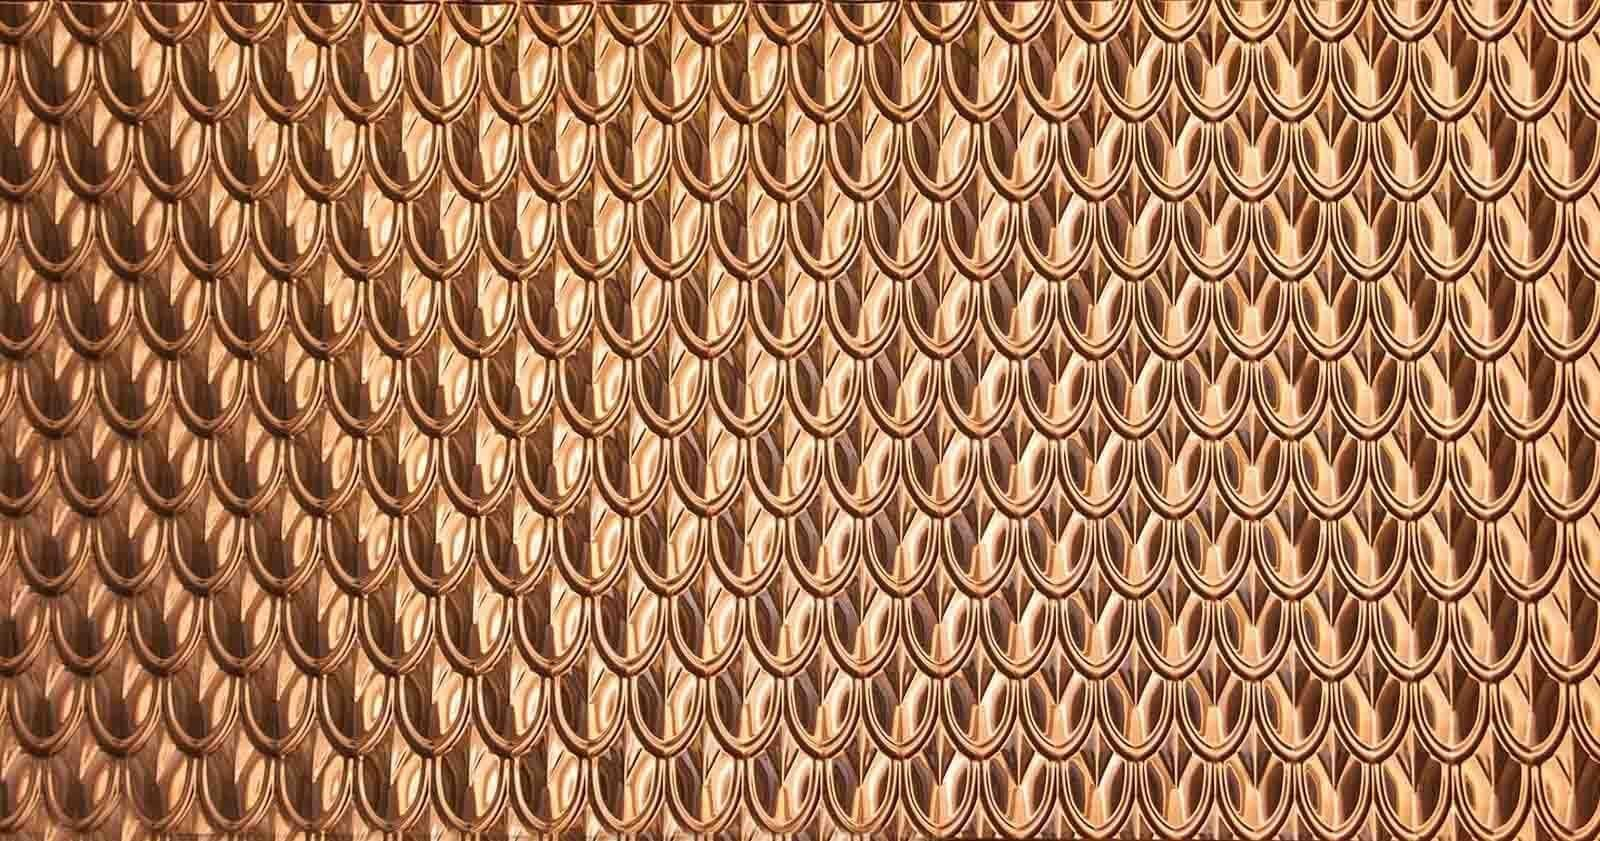 Copper Panels